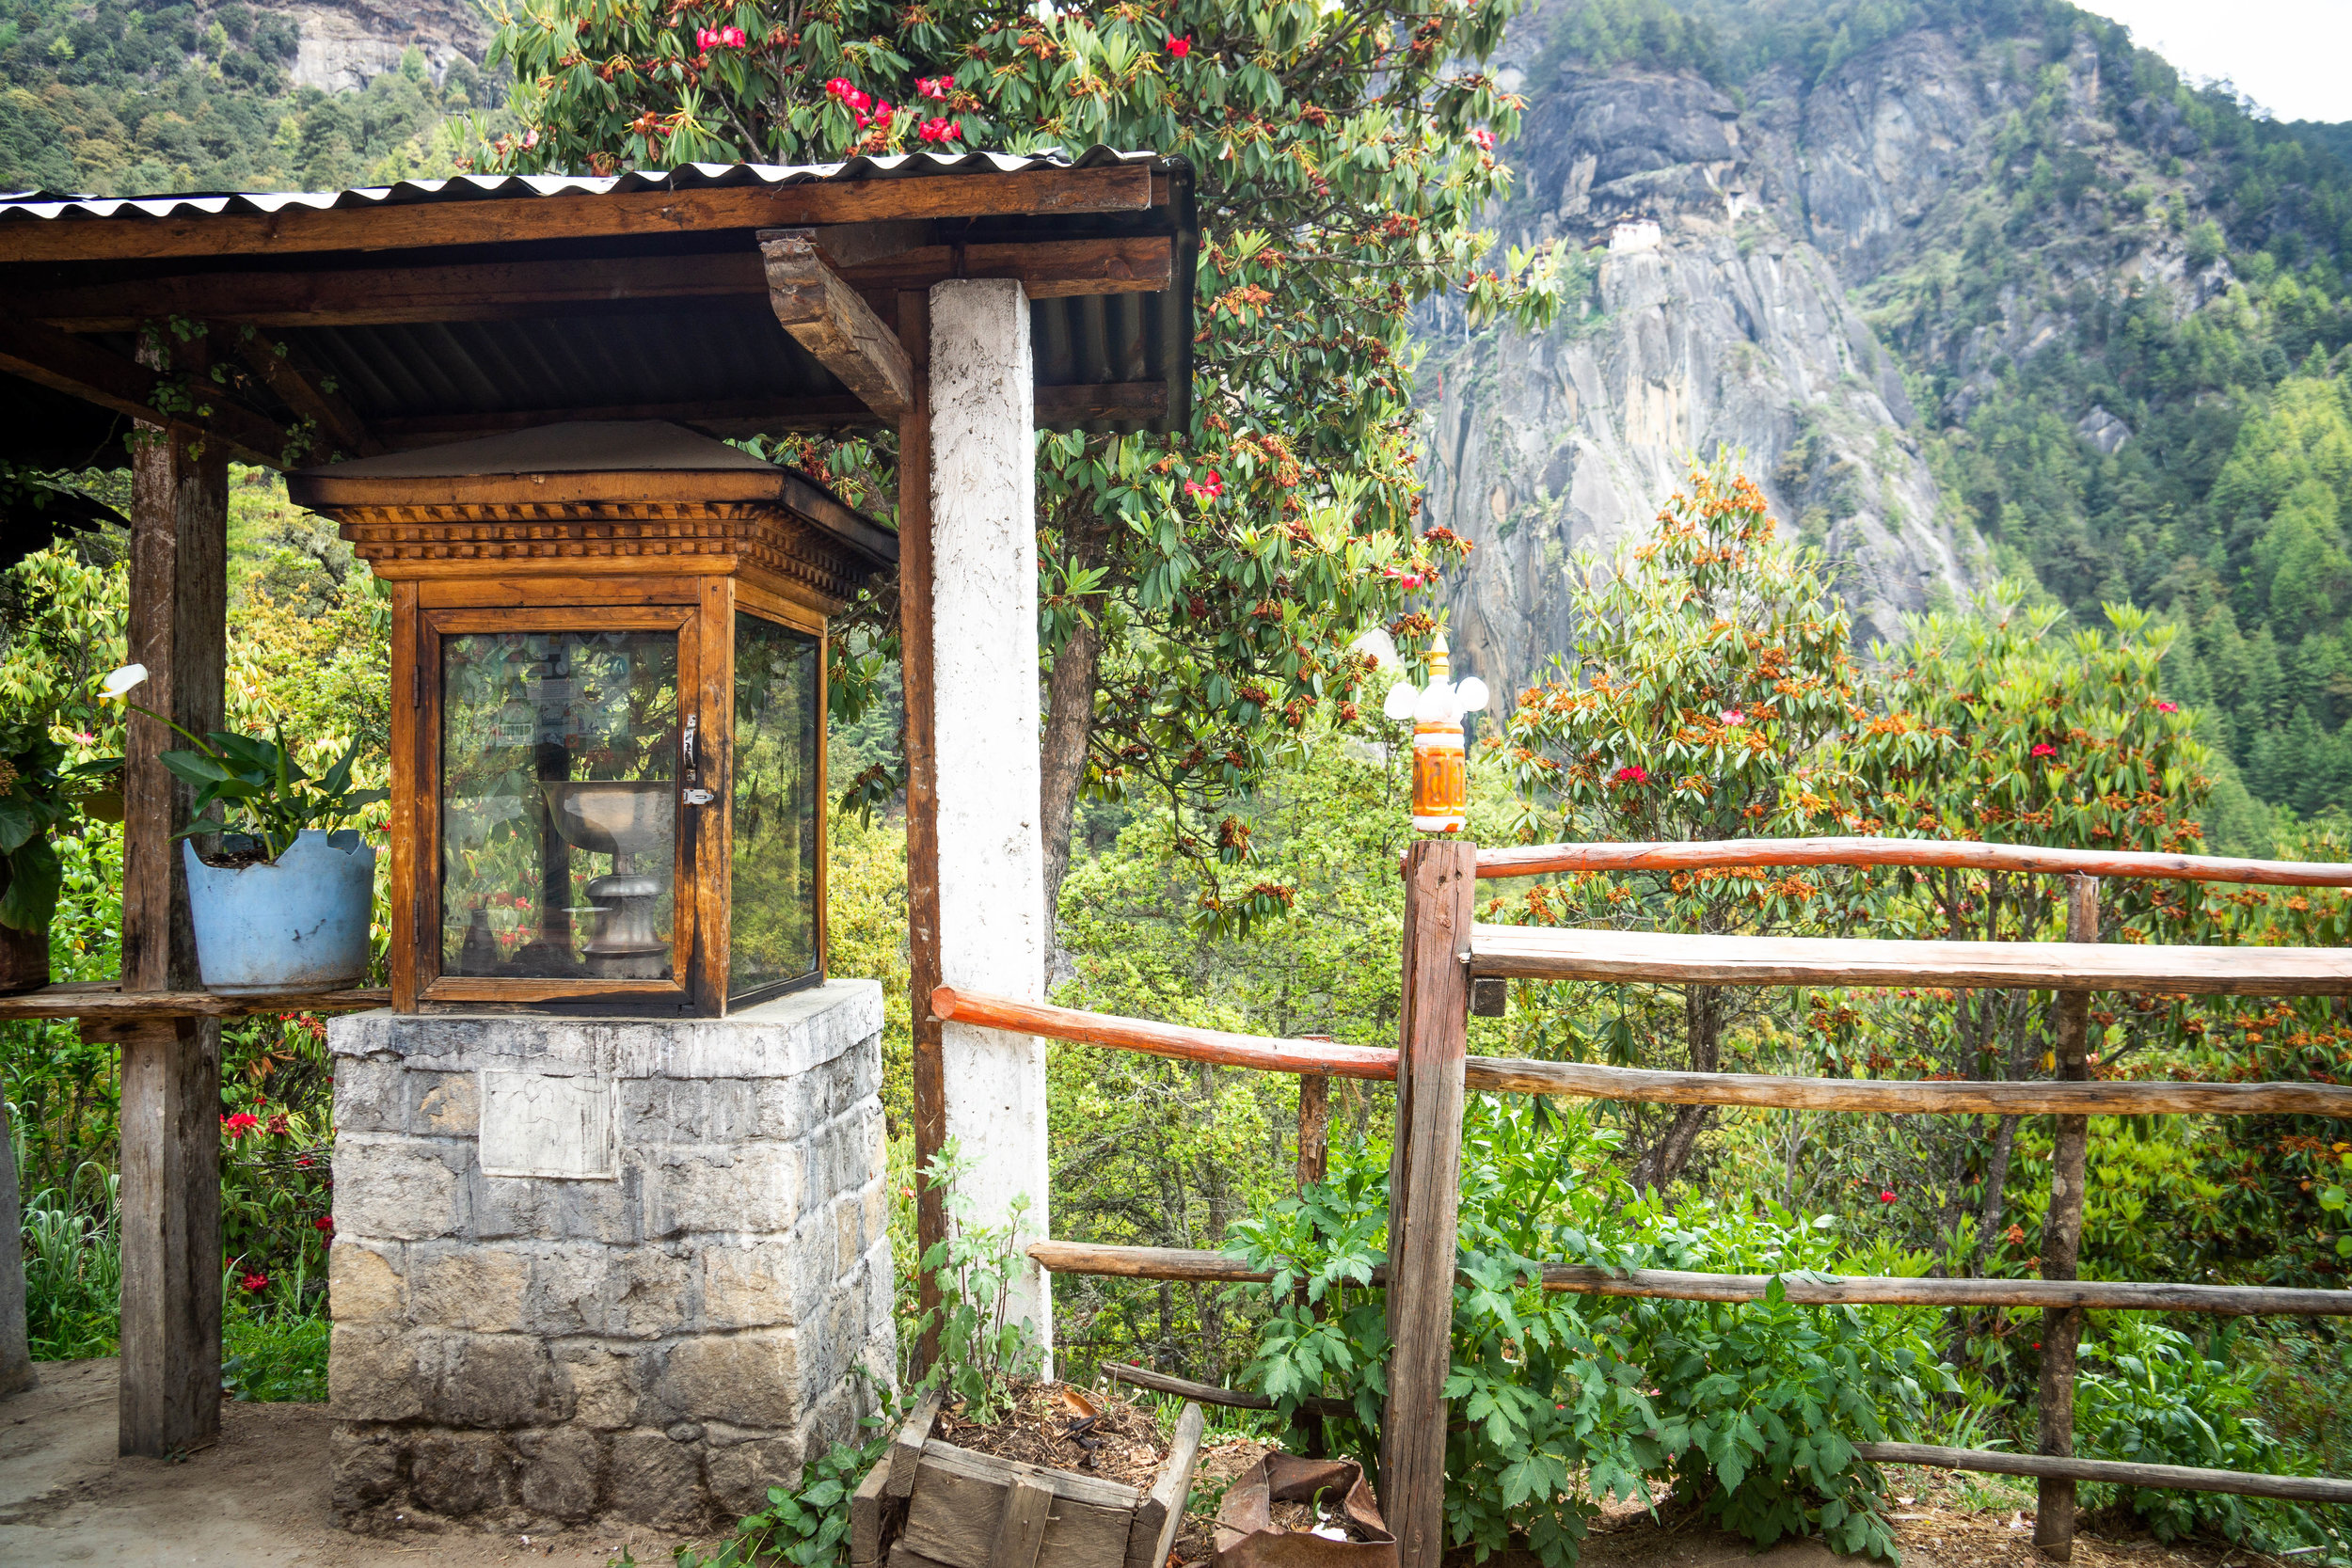 A view of the butter lamp with Tiger's Nest hanging on the cliffside behind it